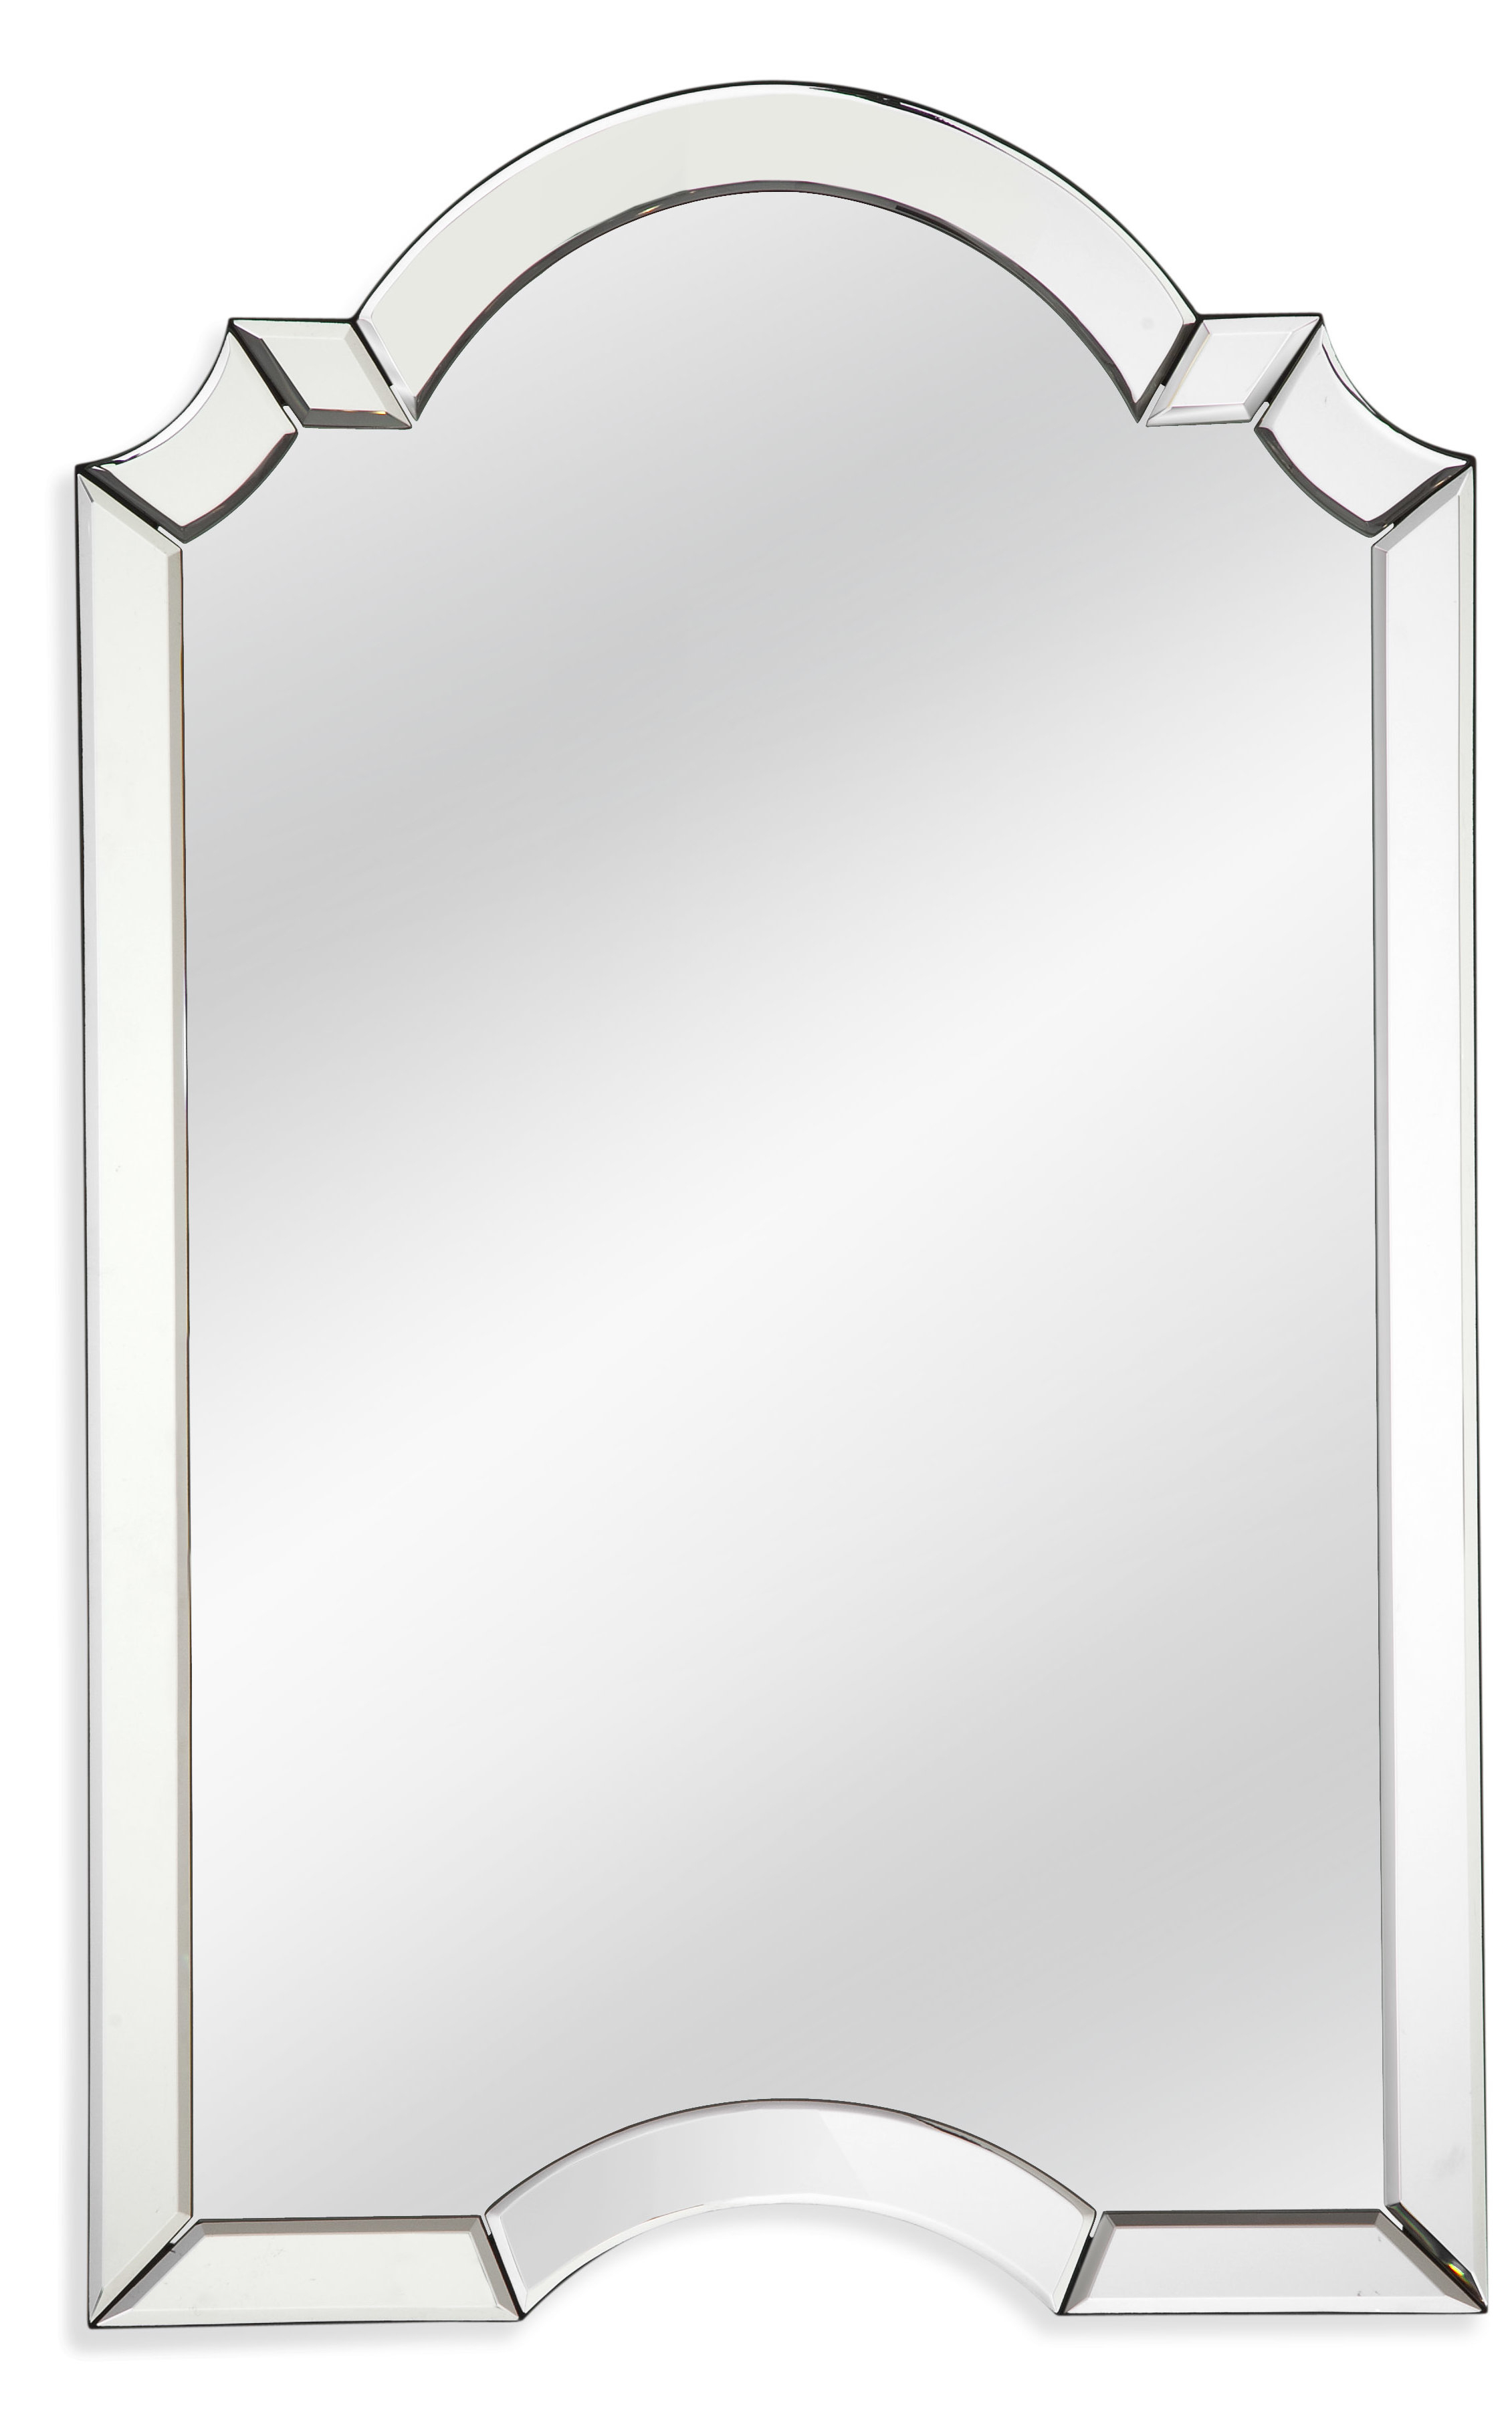 Ekaterina Arch/crowned Top Wall Mirror With Ekaterina Arch/crowned Top Wall Mirrors (View 2 of 30)